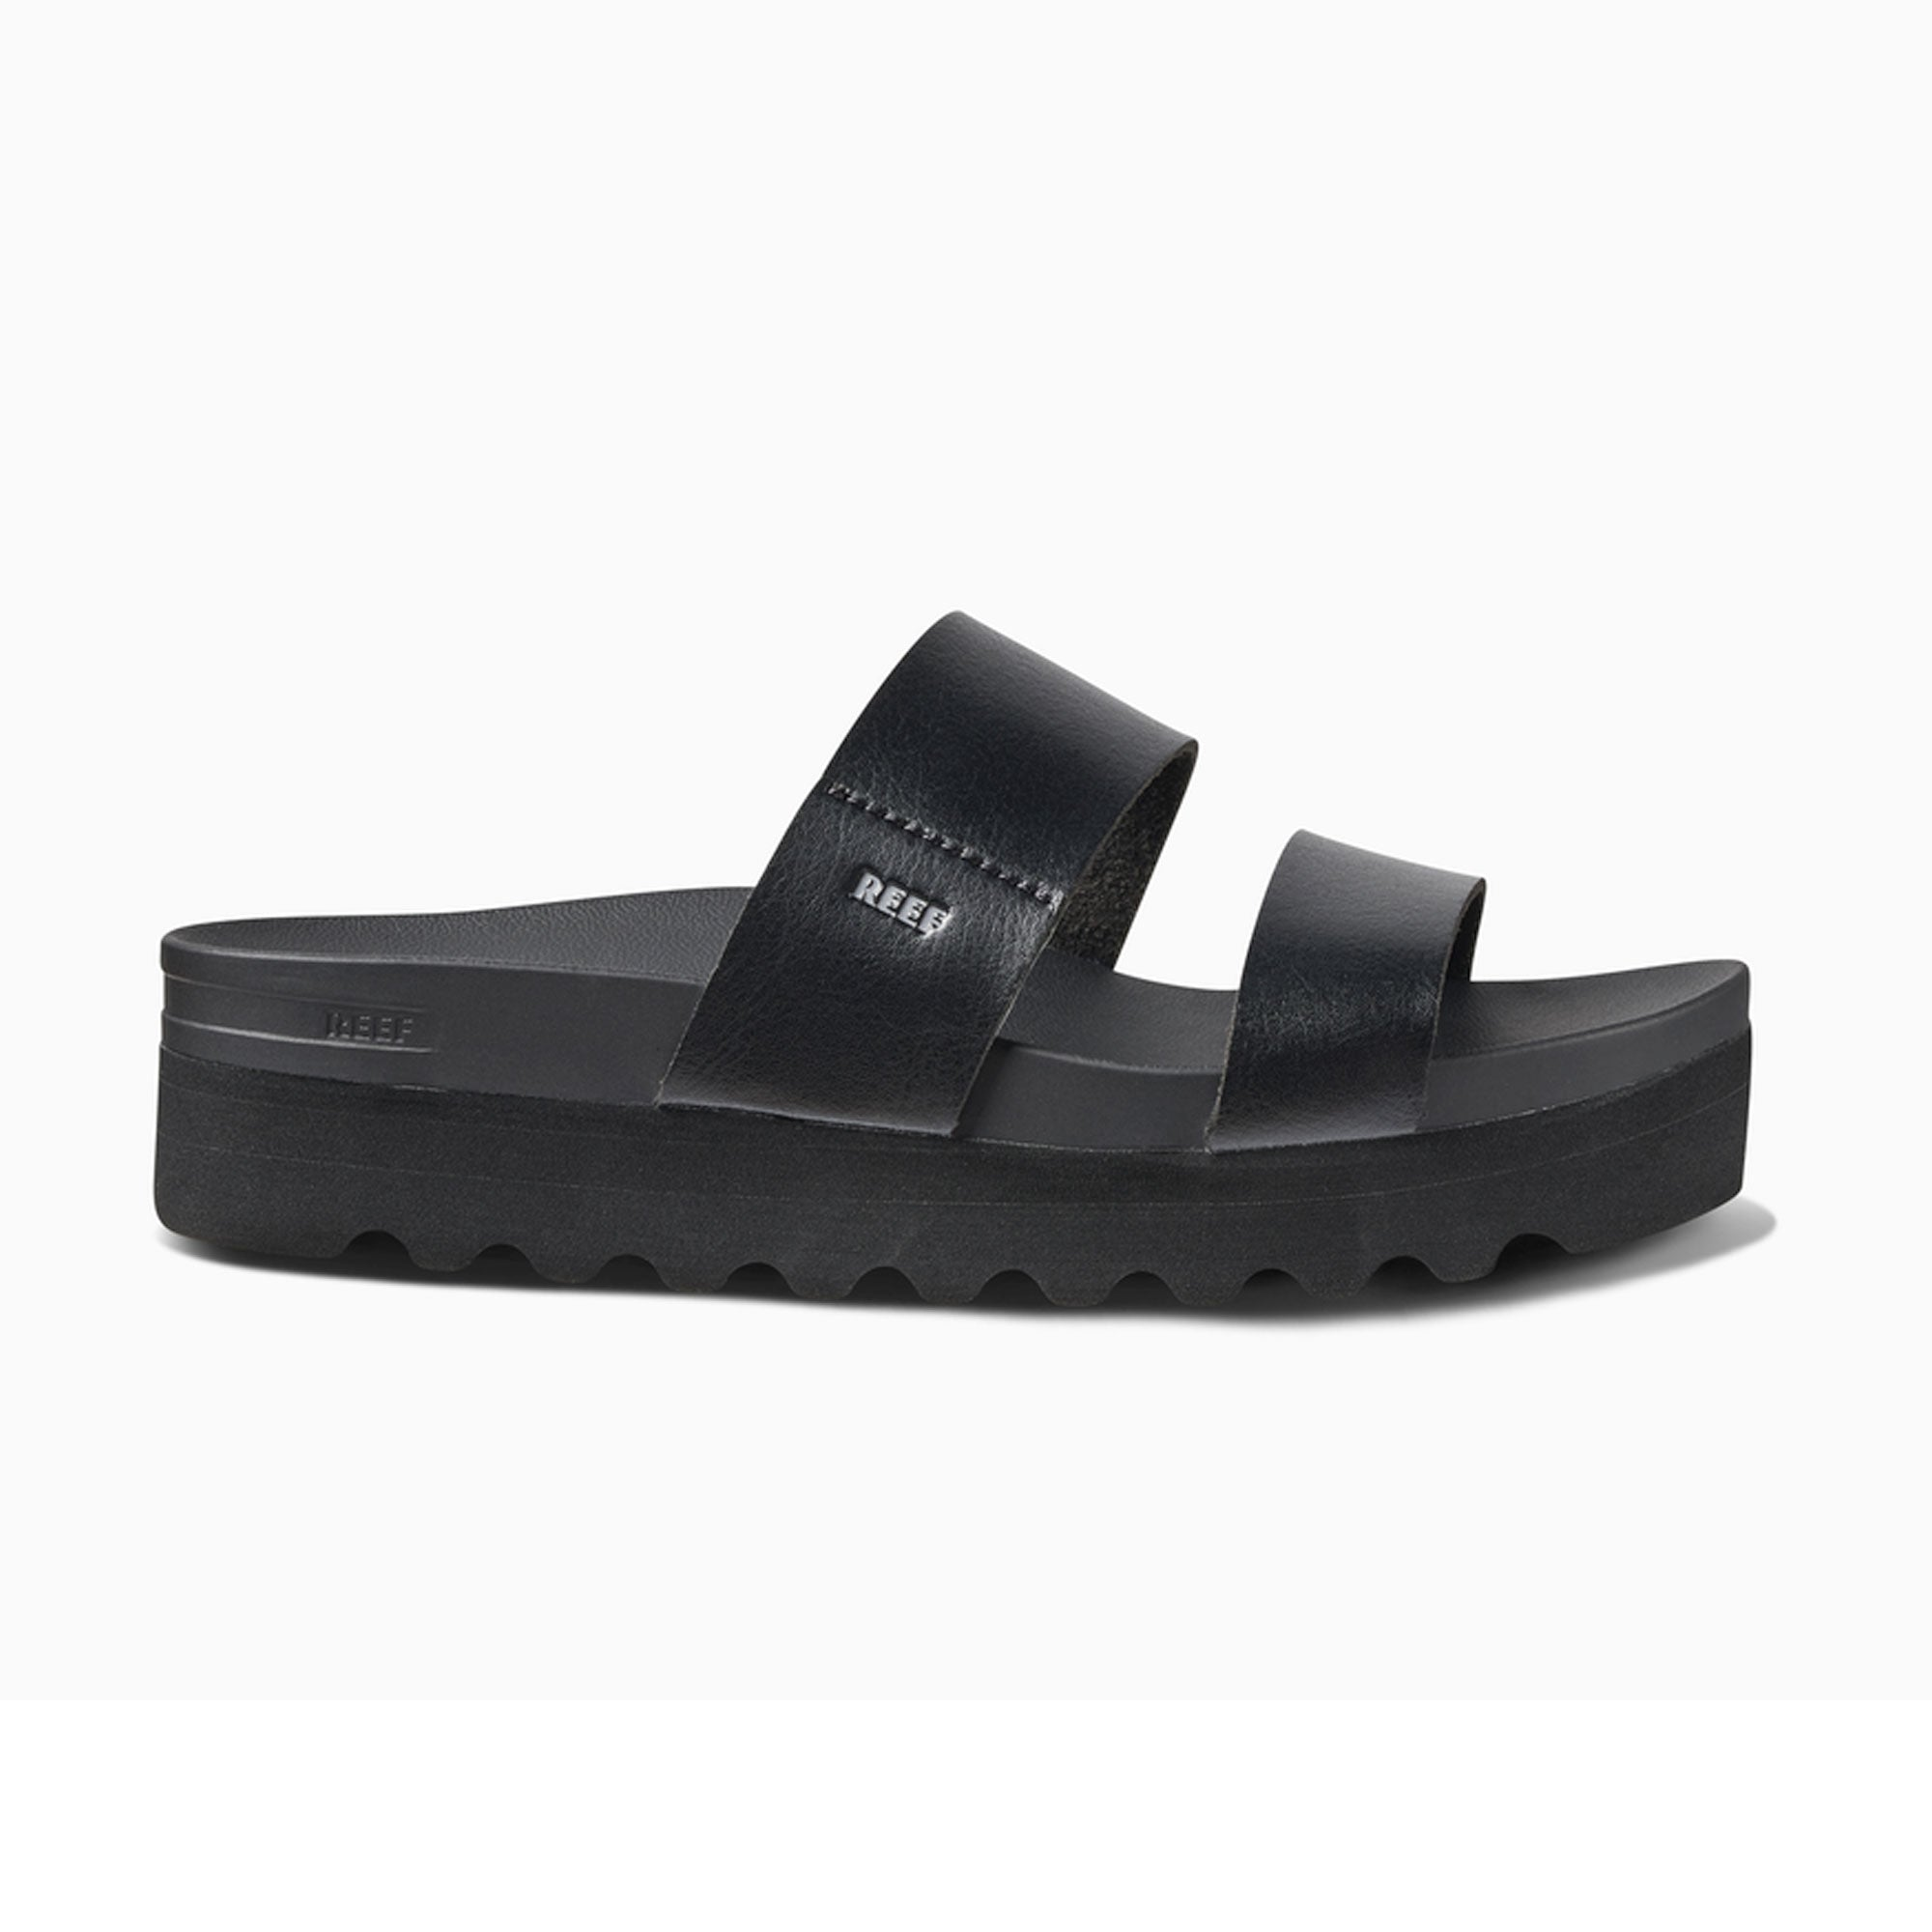 Reef Cushion Vista Hi Women's Sandals - Black